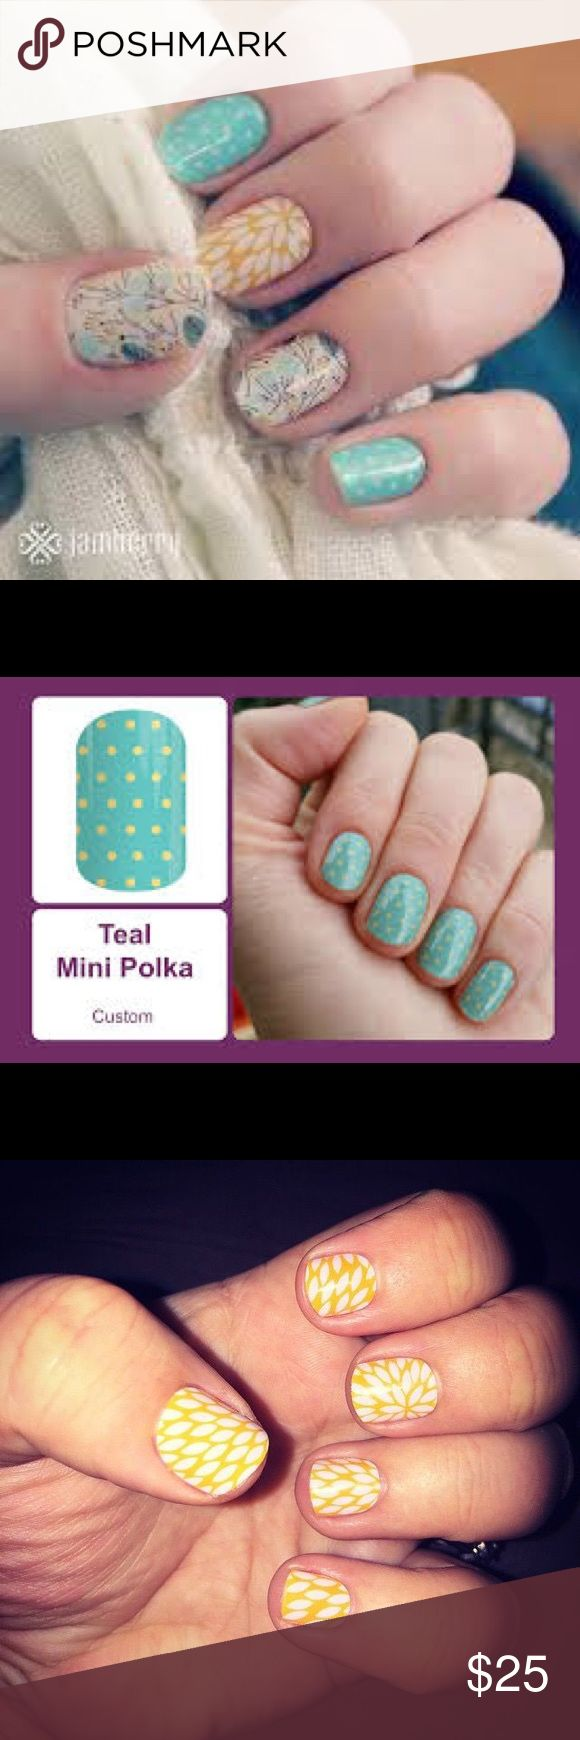 JAMBERRY nail wraps -- 3 total wraps included Three JAMBERRY wraps - when combined create the look in first picture Jamberry Other